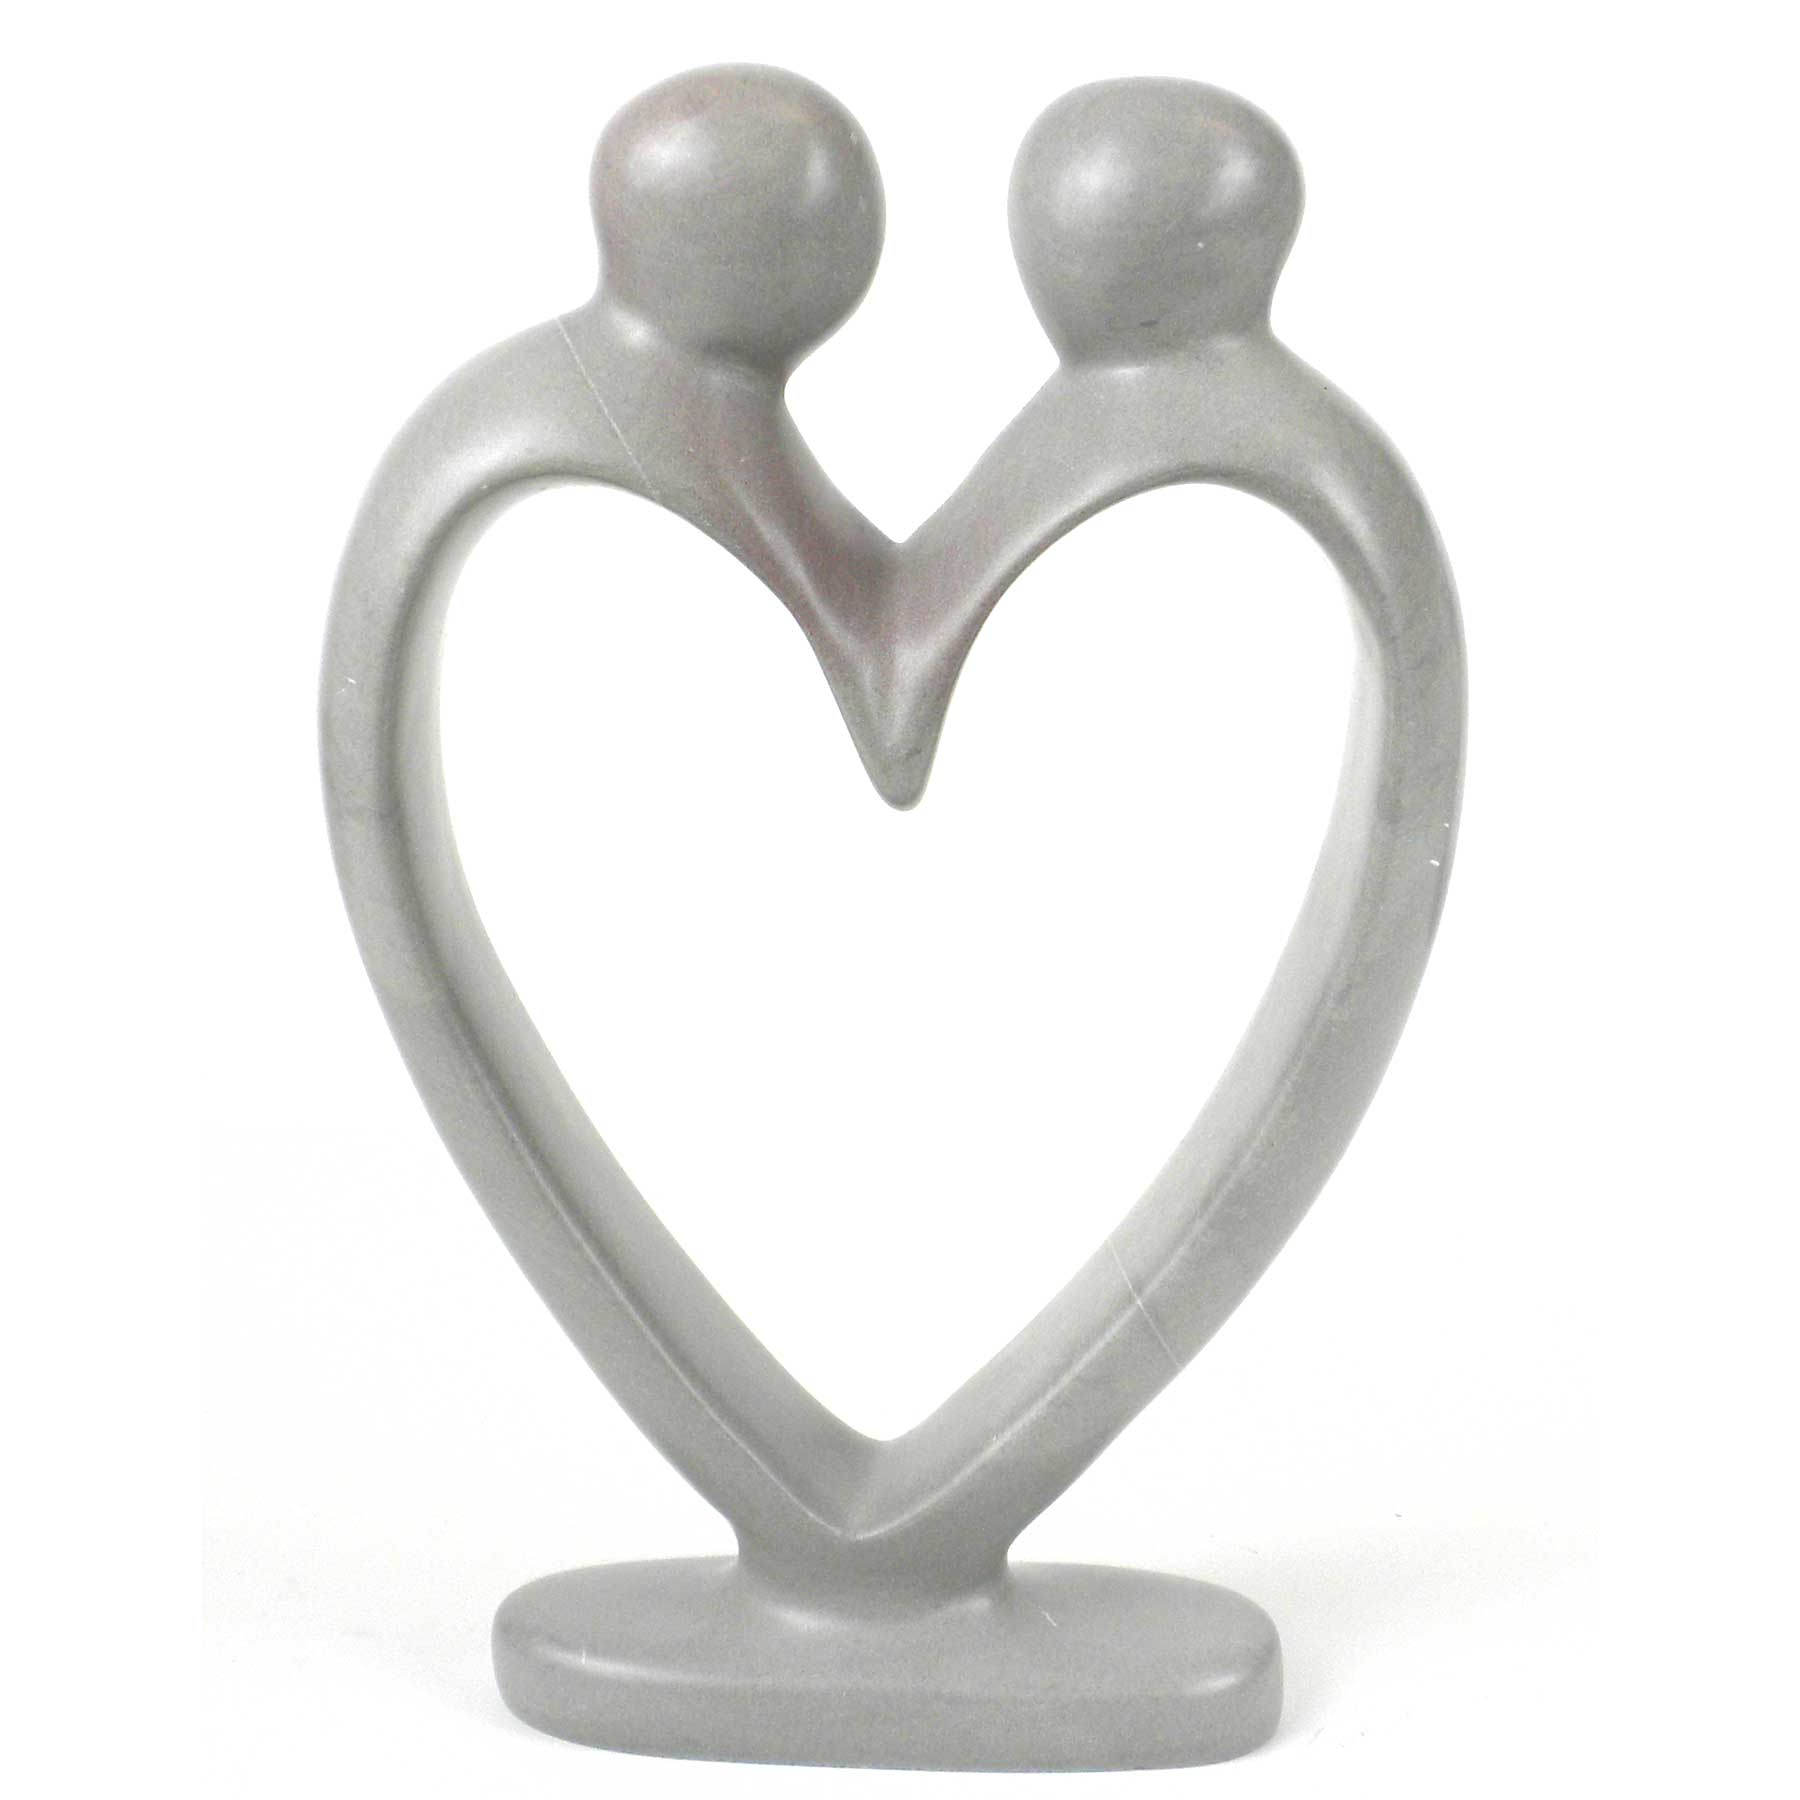 Handcrafted Soapstone Lover's Heart Sculpture in White